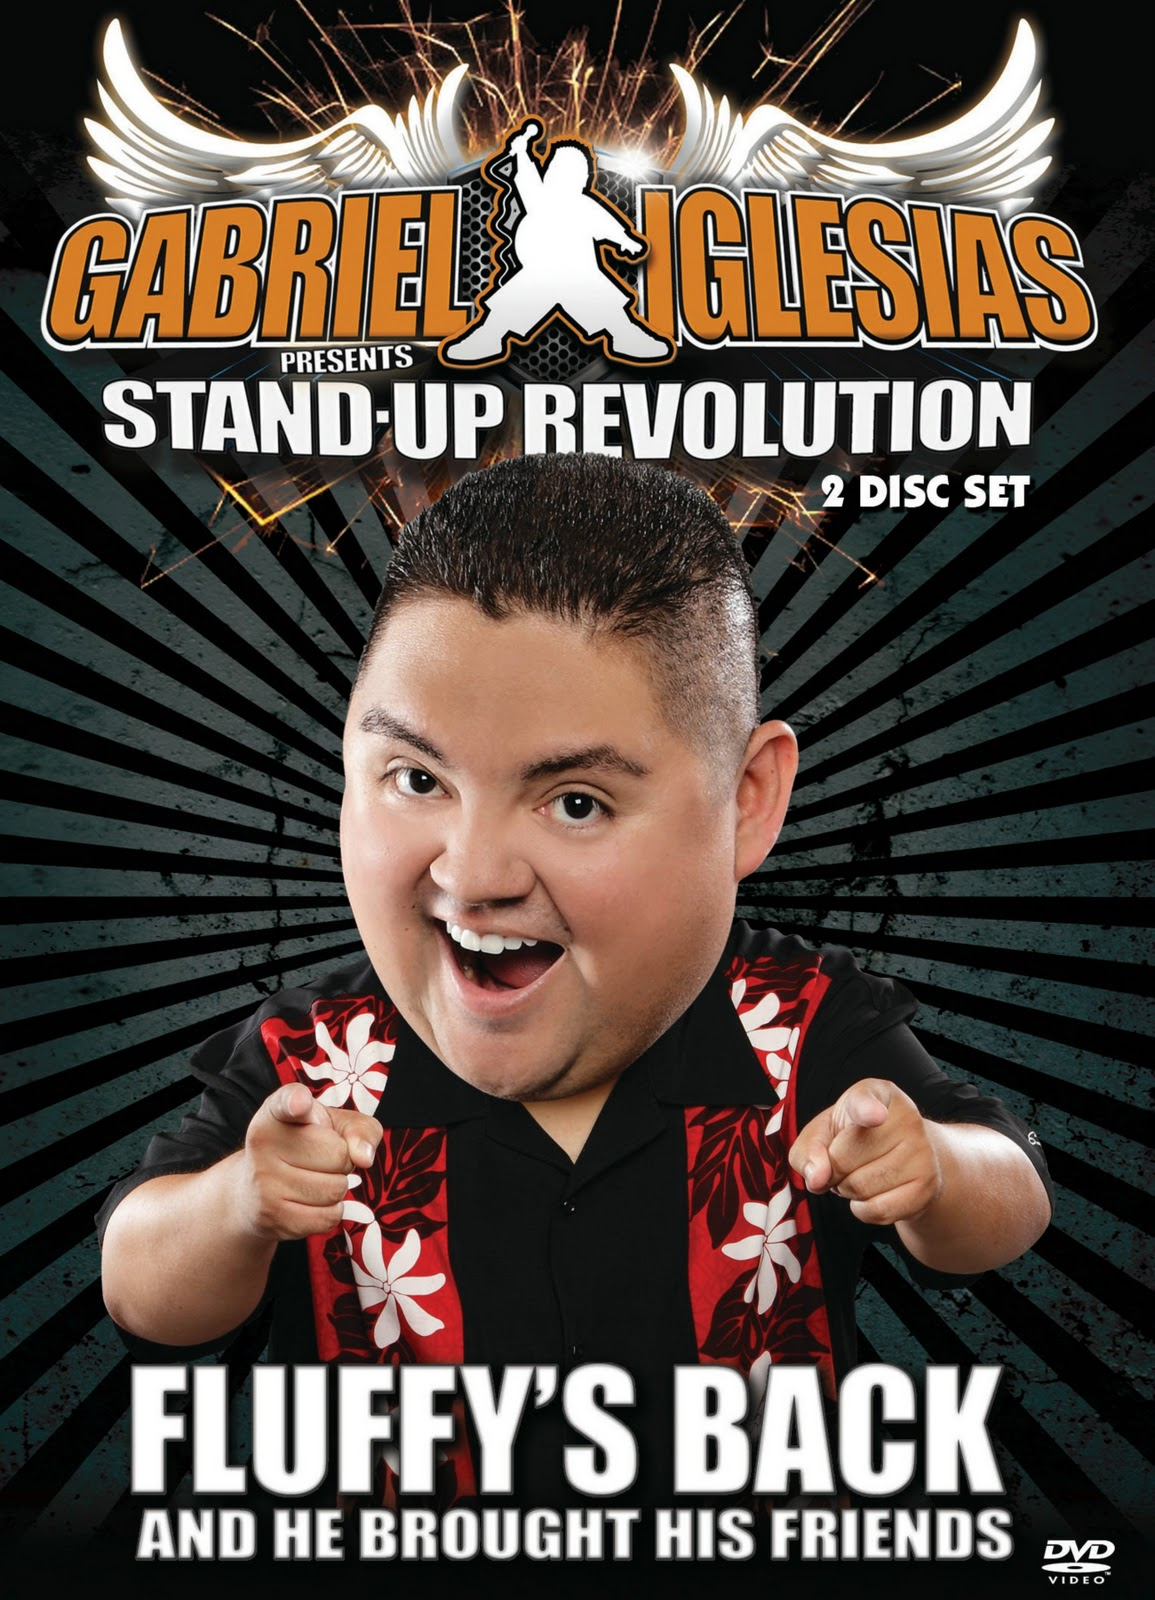 Gabriel Iglesias Presents Stand Up Revolution Comes To Dvd